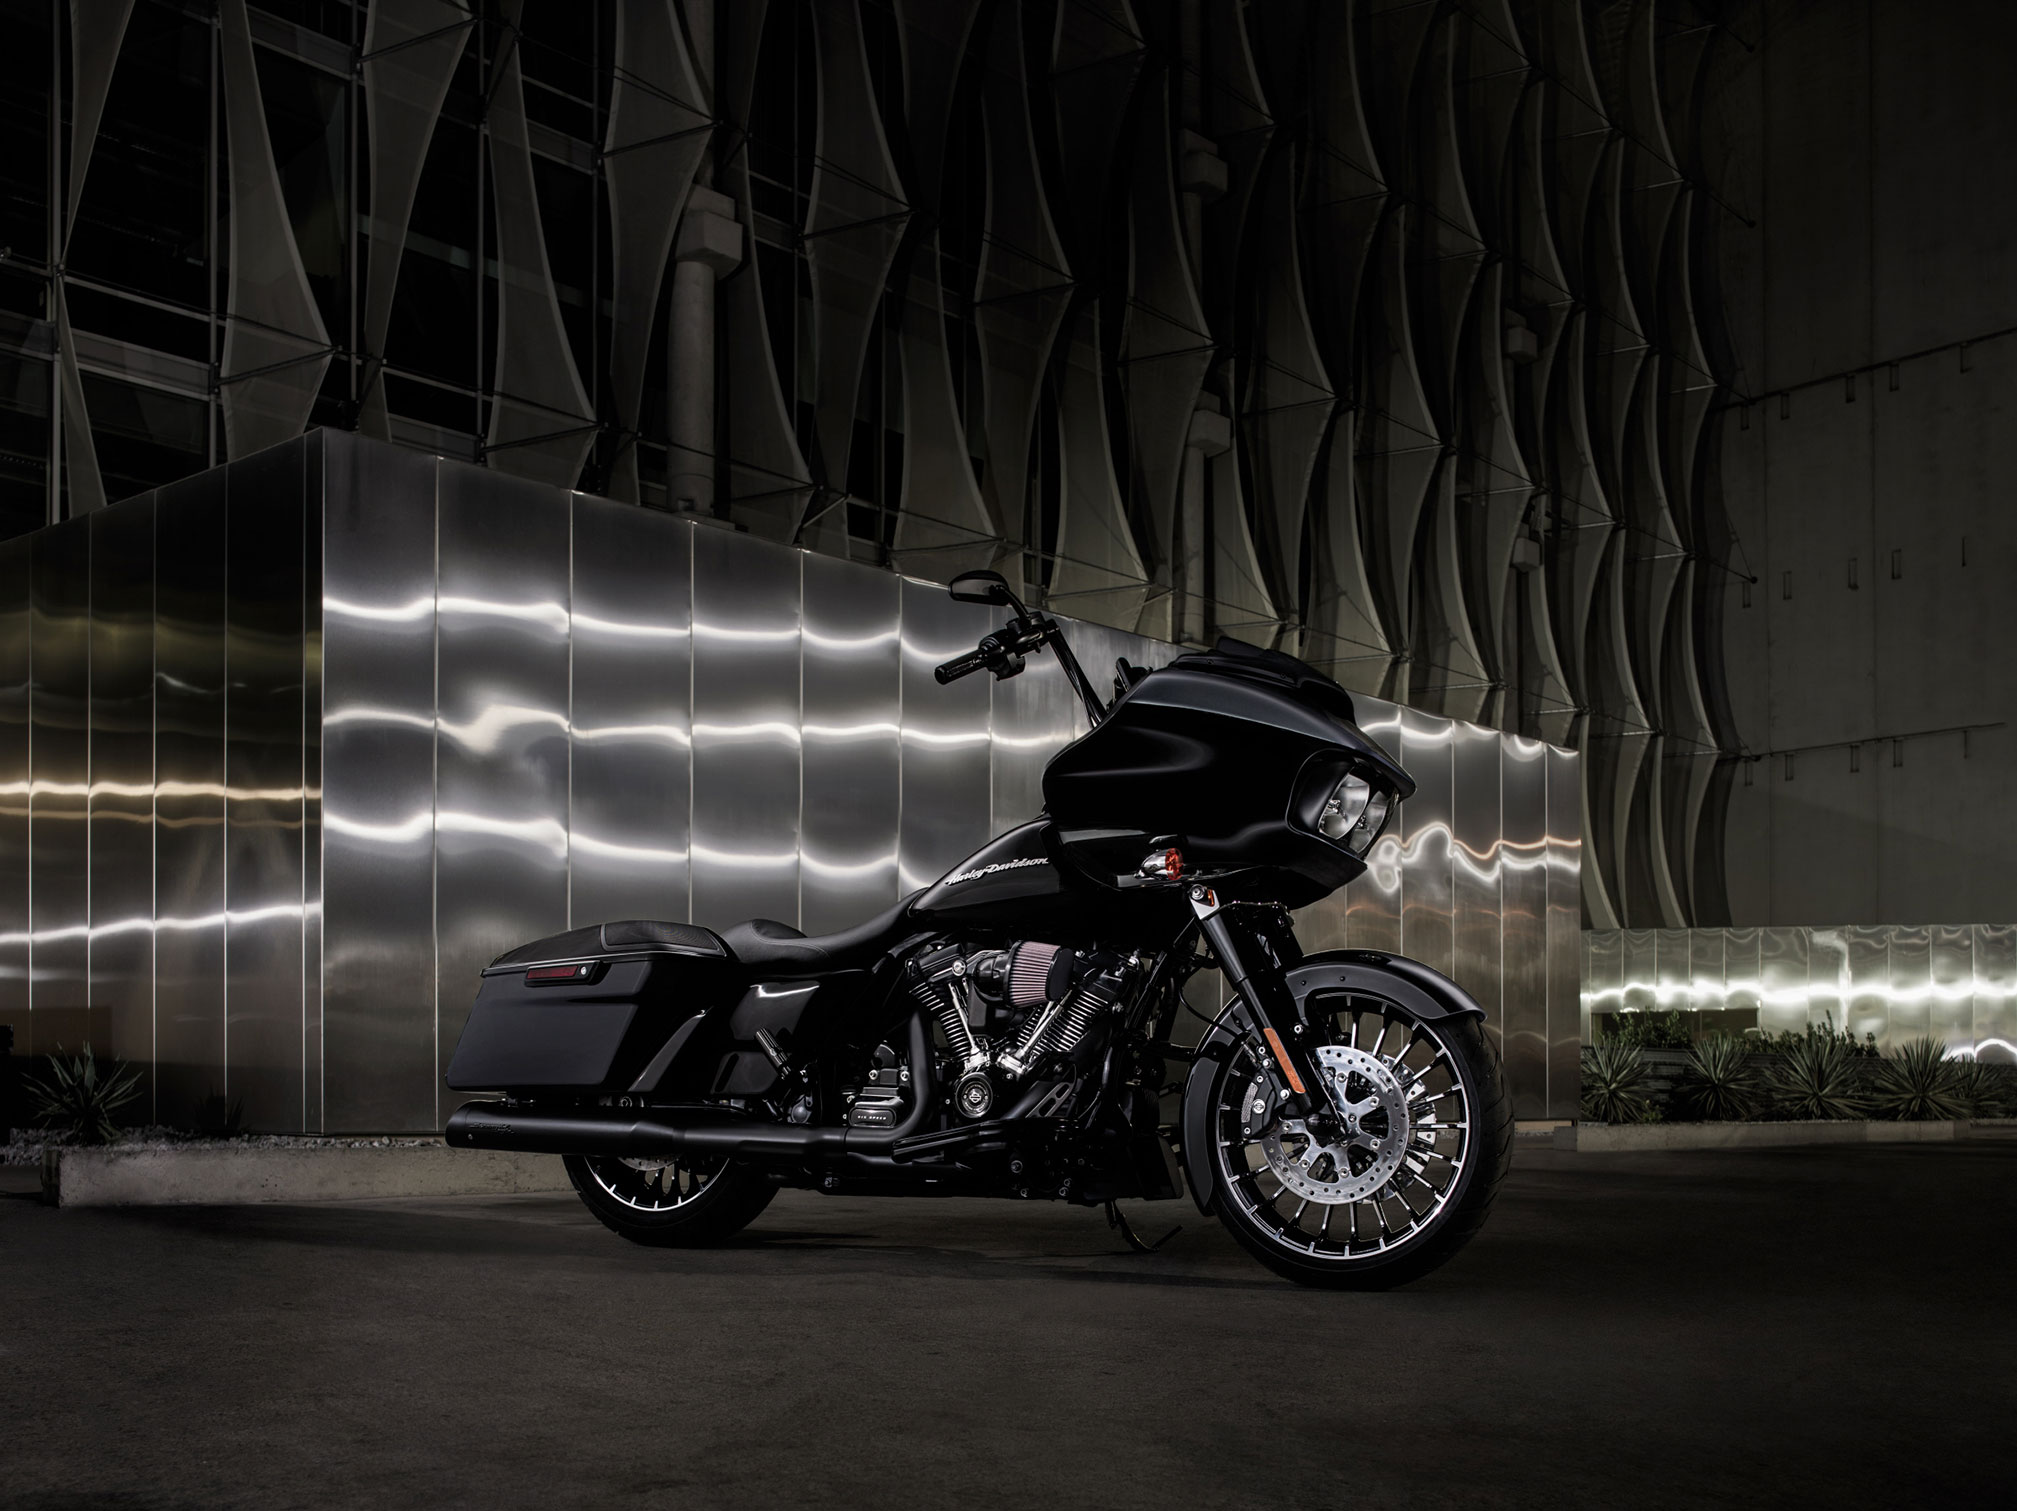 10 Harley Davidson Road Glide Hd Wallpapers Background